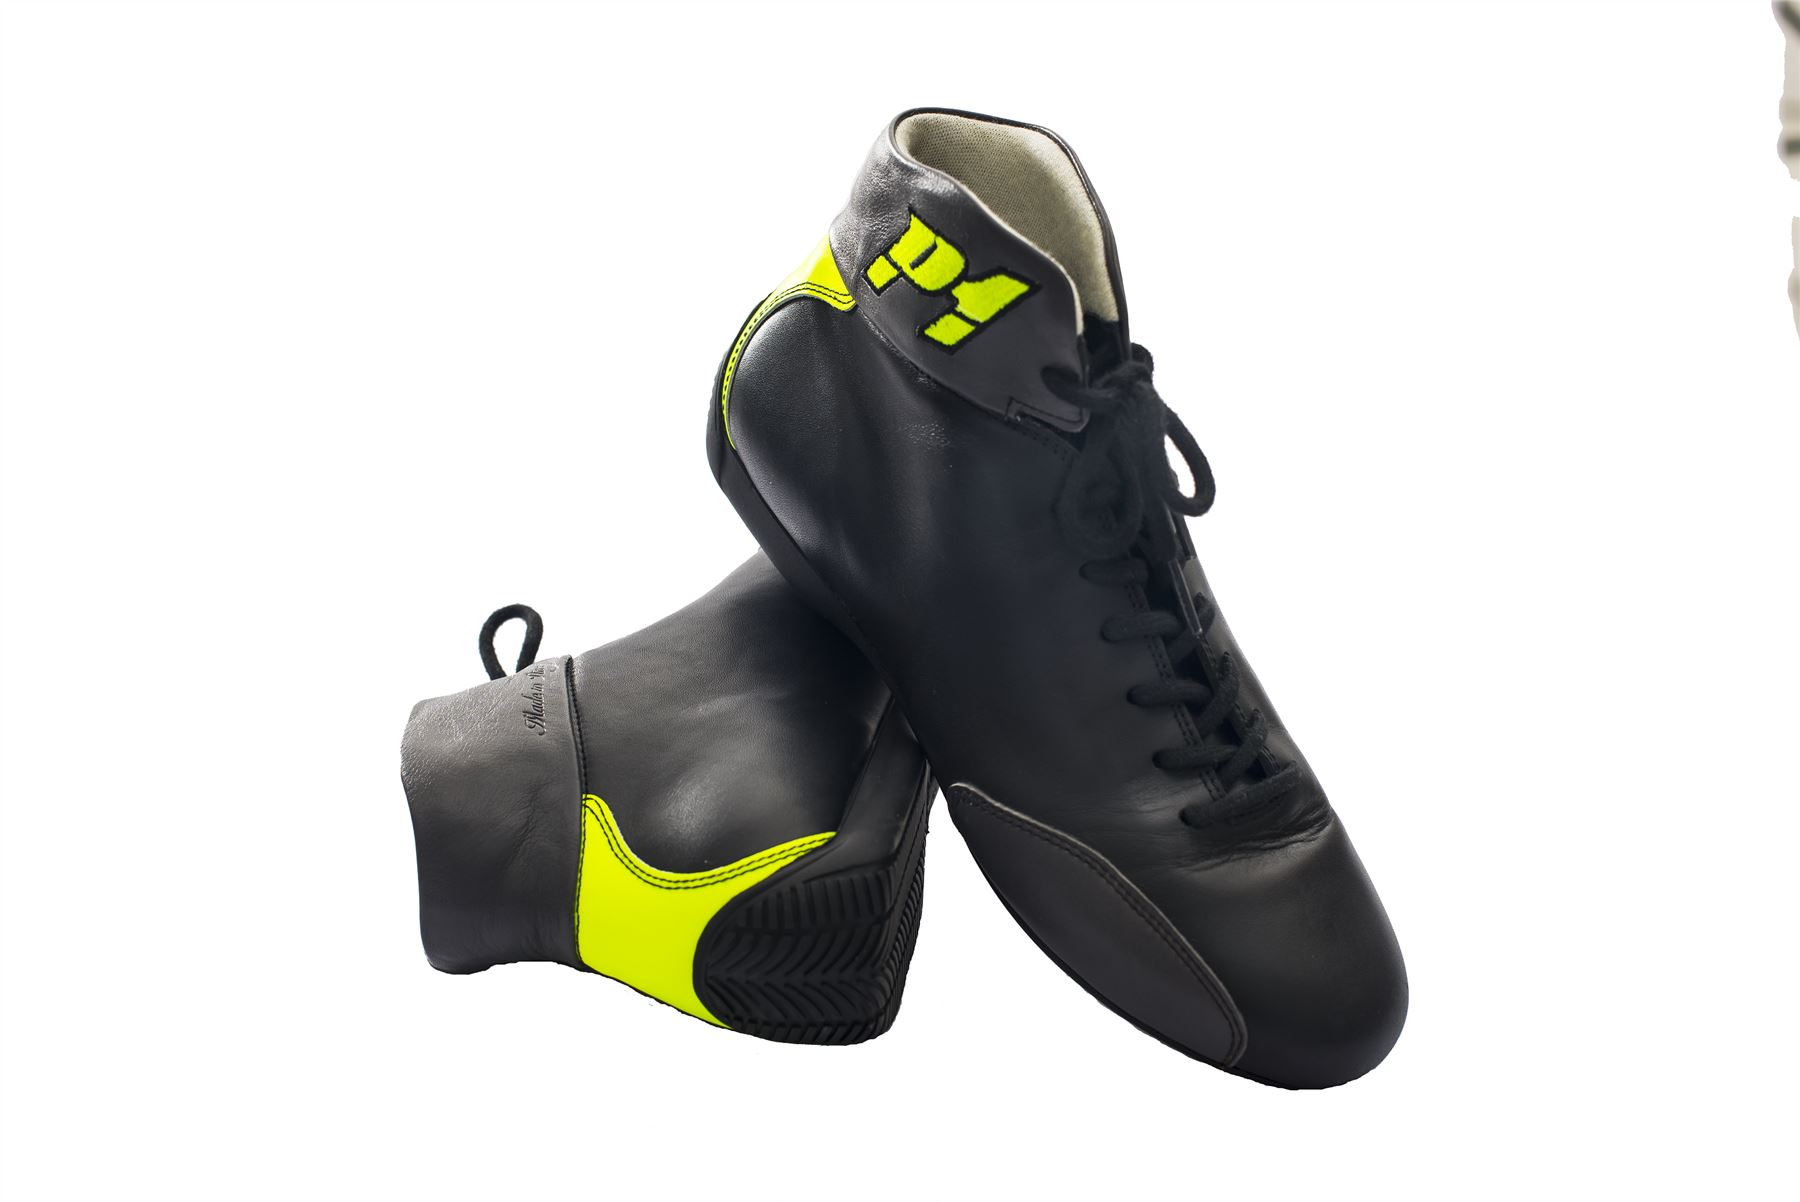 Indexbild 12 - P1-Racewear-Monza-FIA-Approved-Soft-Leather-Race-Rally-Boots-Black-Fluro